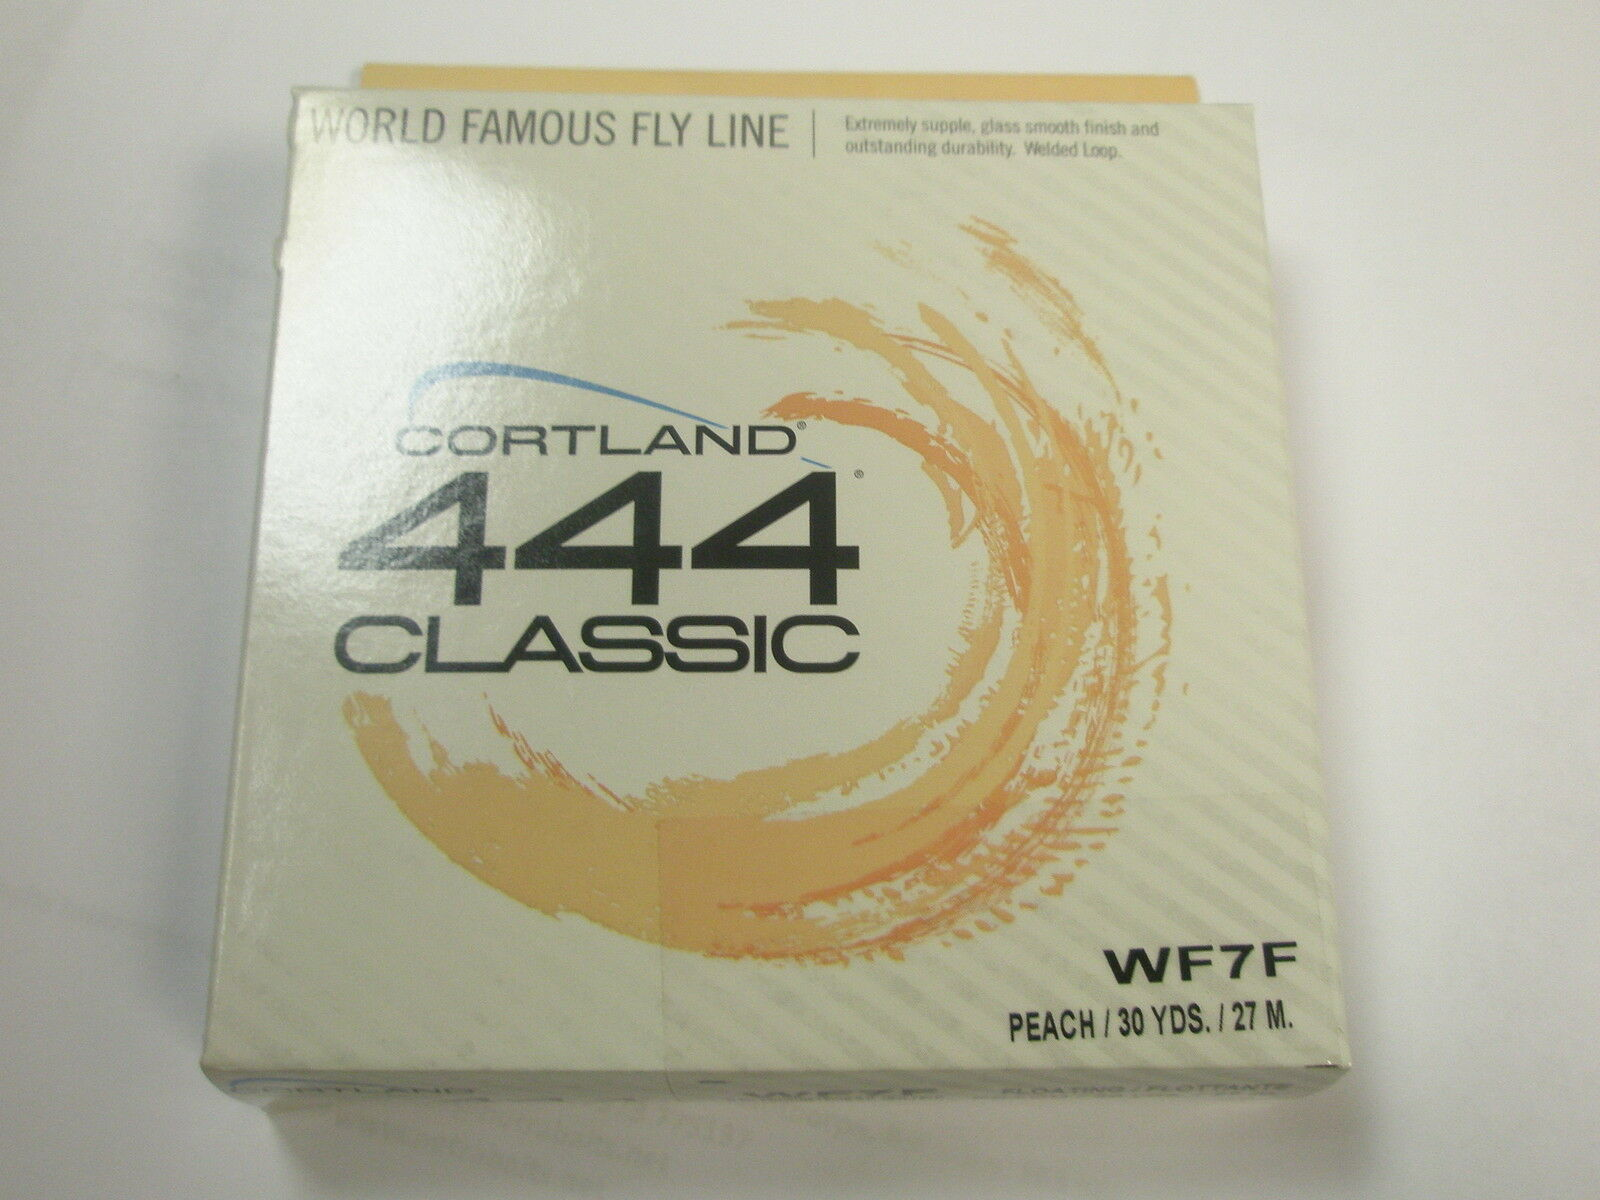 Cortland 444 Classic  Flyline Peach ALL VARIETIES  Fly fishing  happy shopping